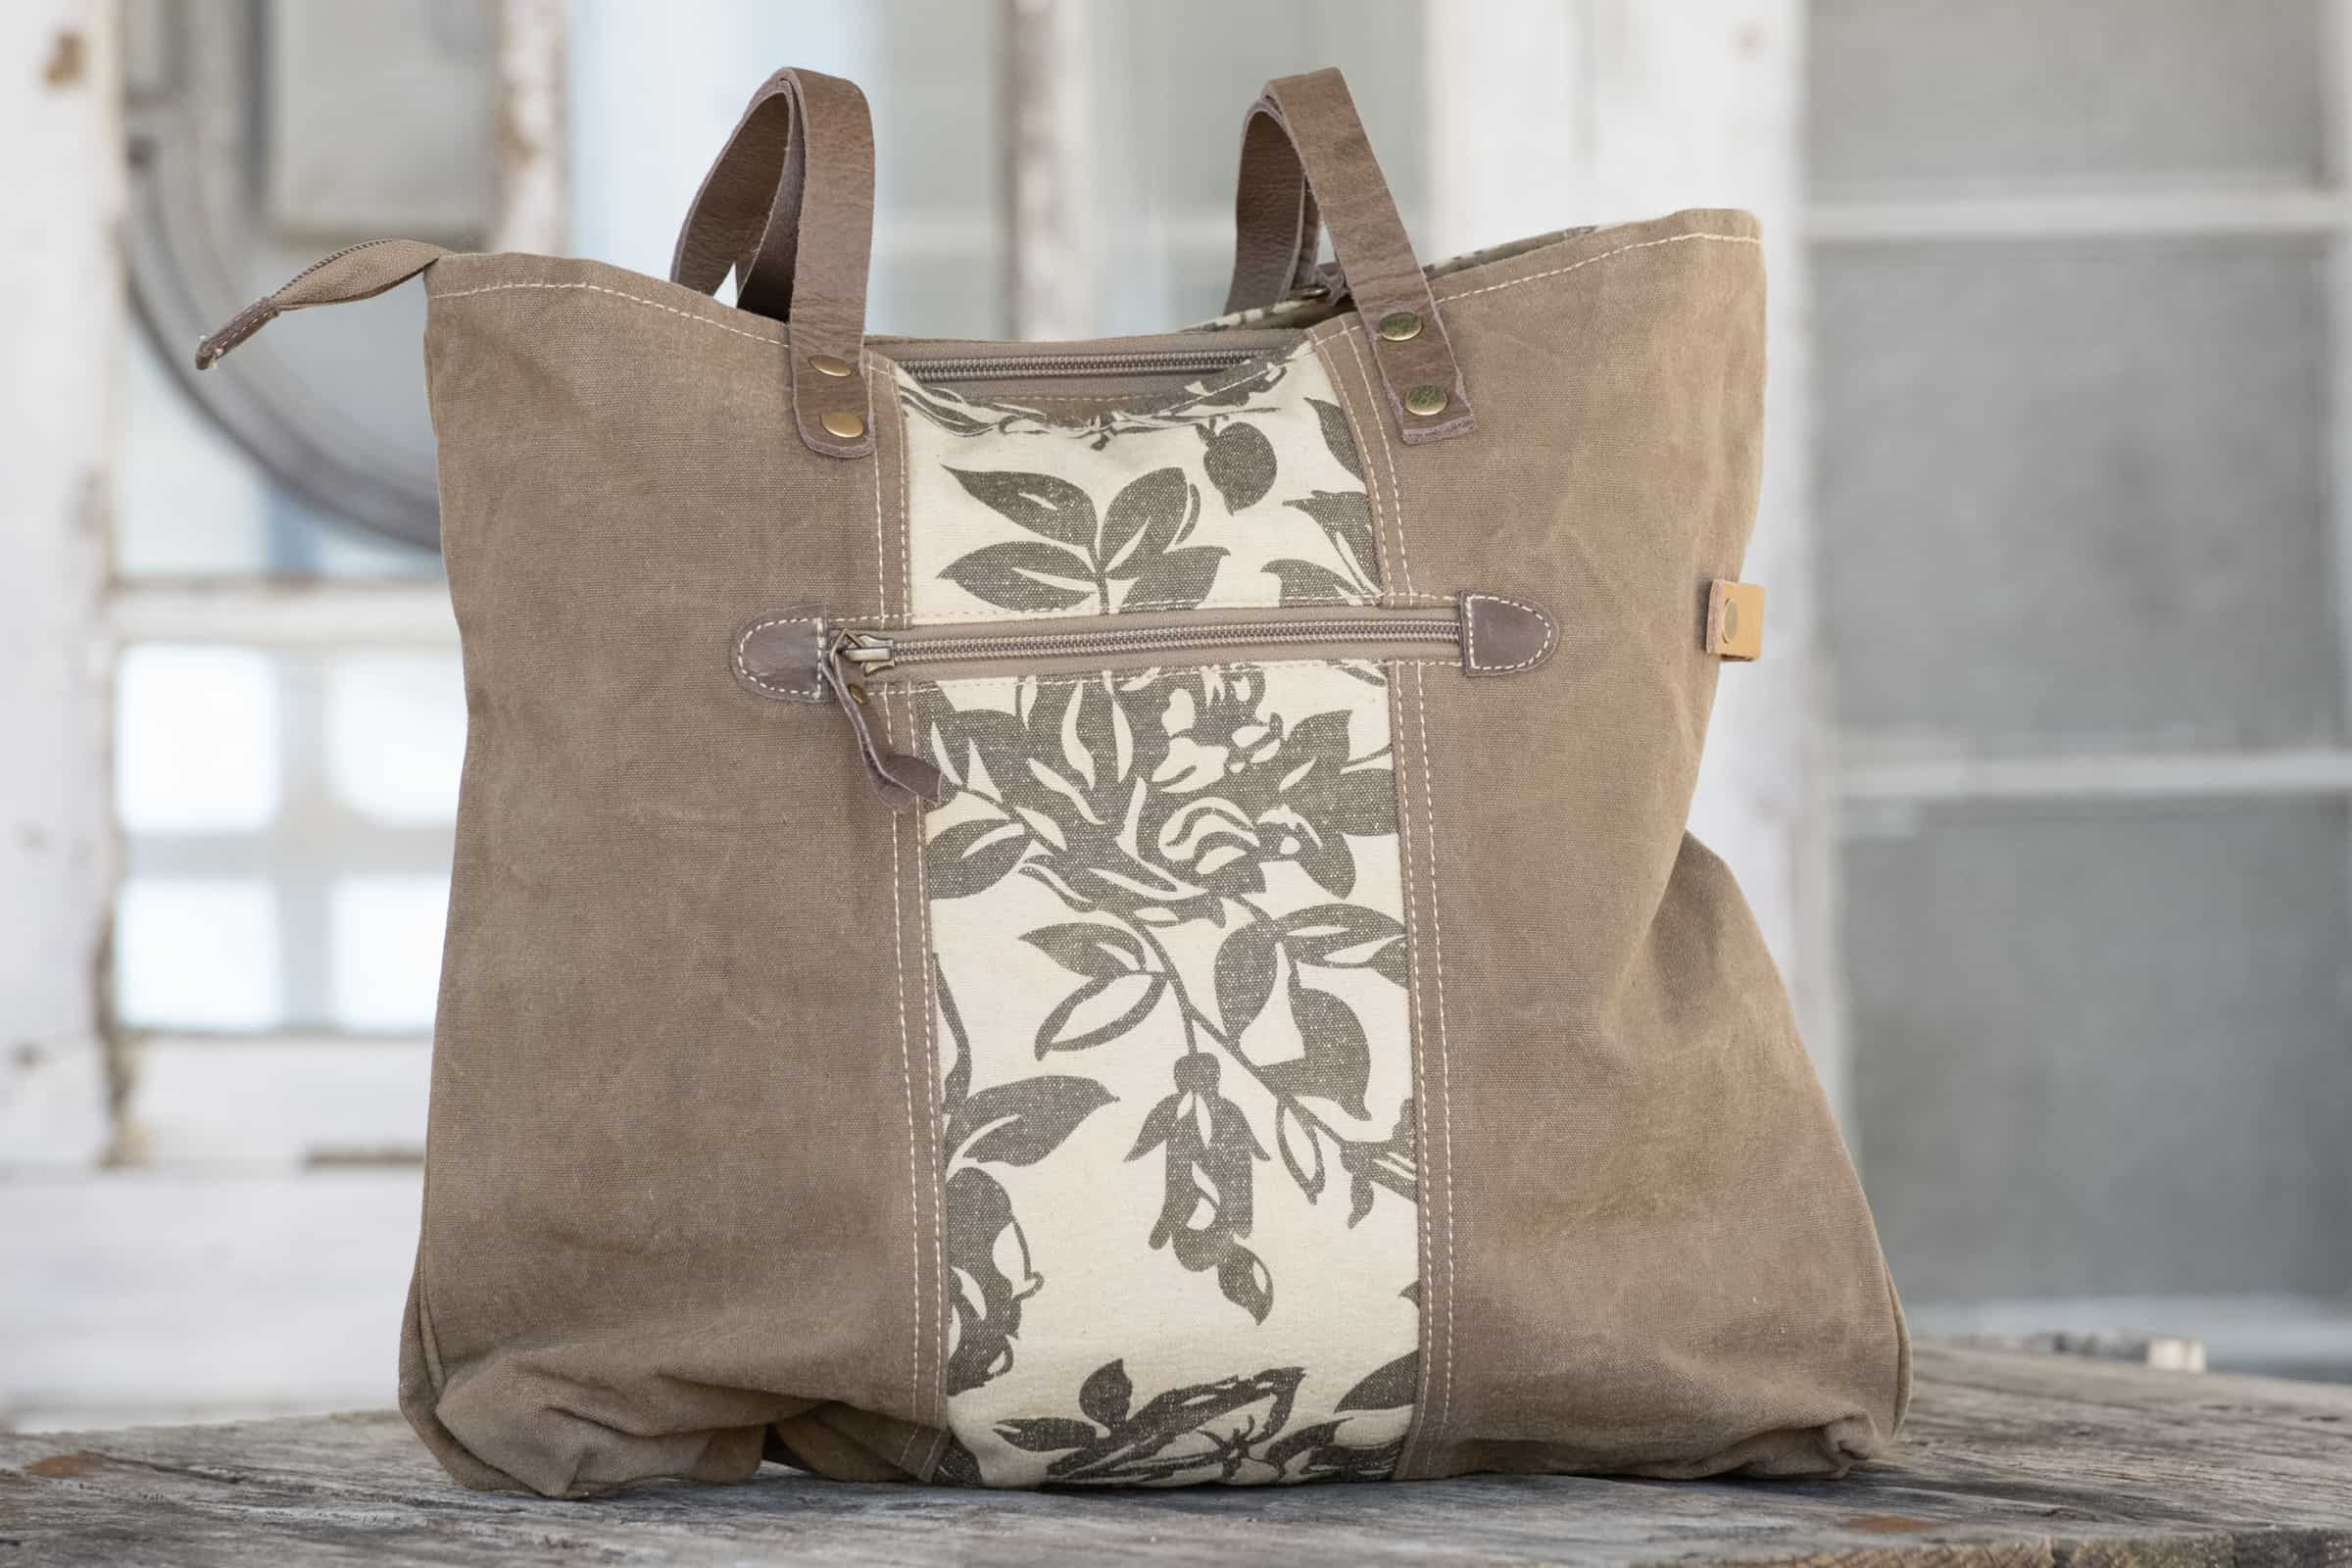 bags made from recycled canvas